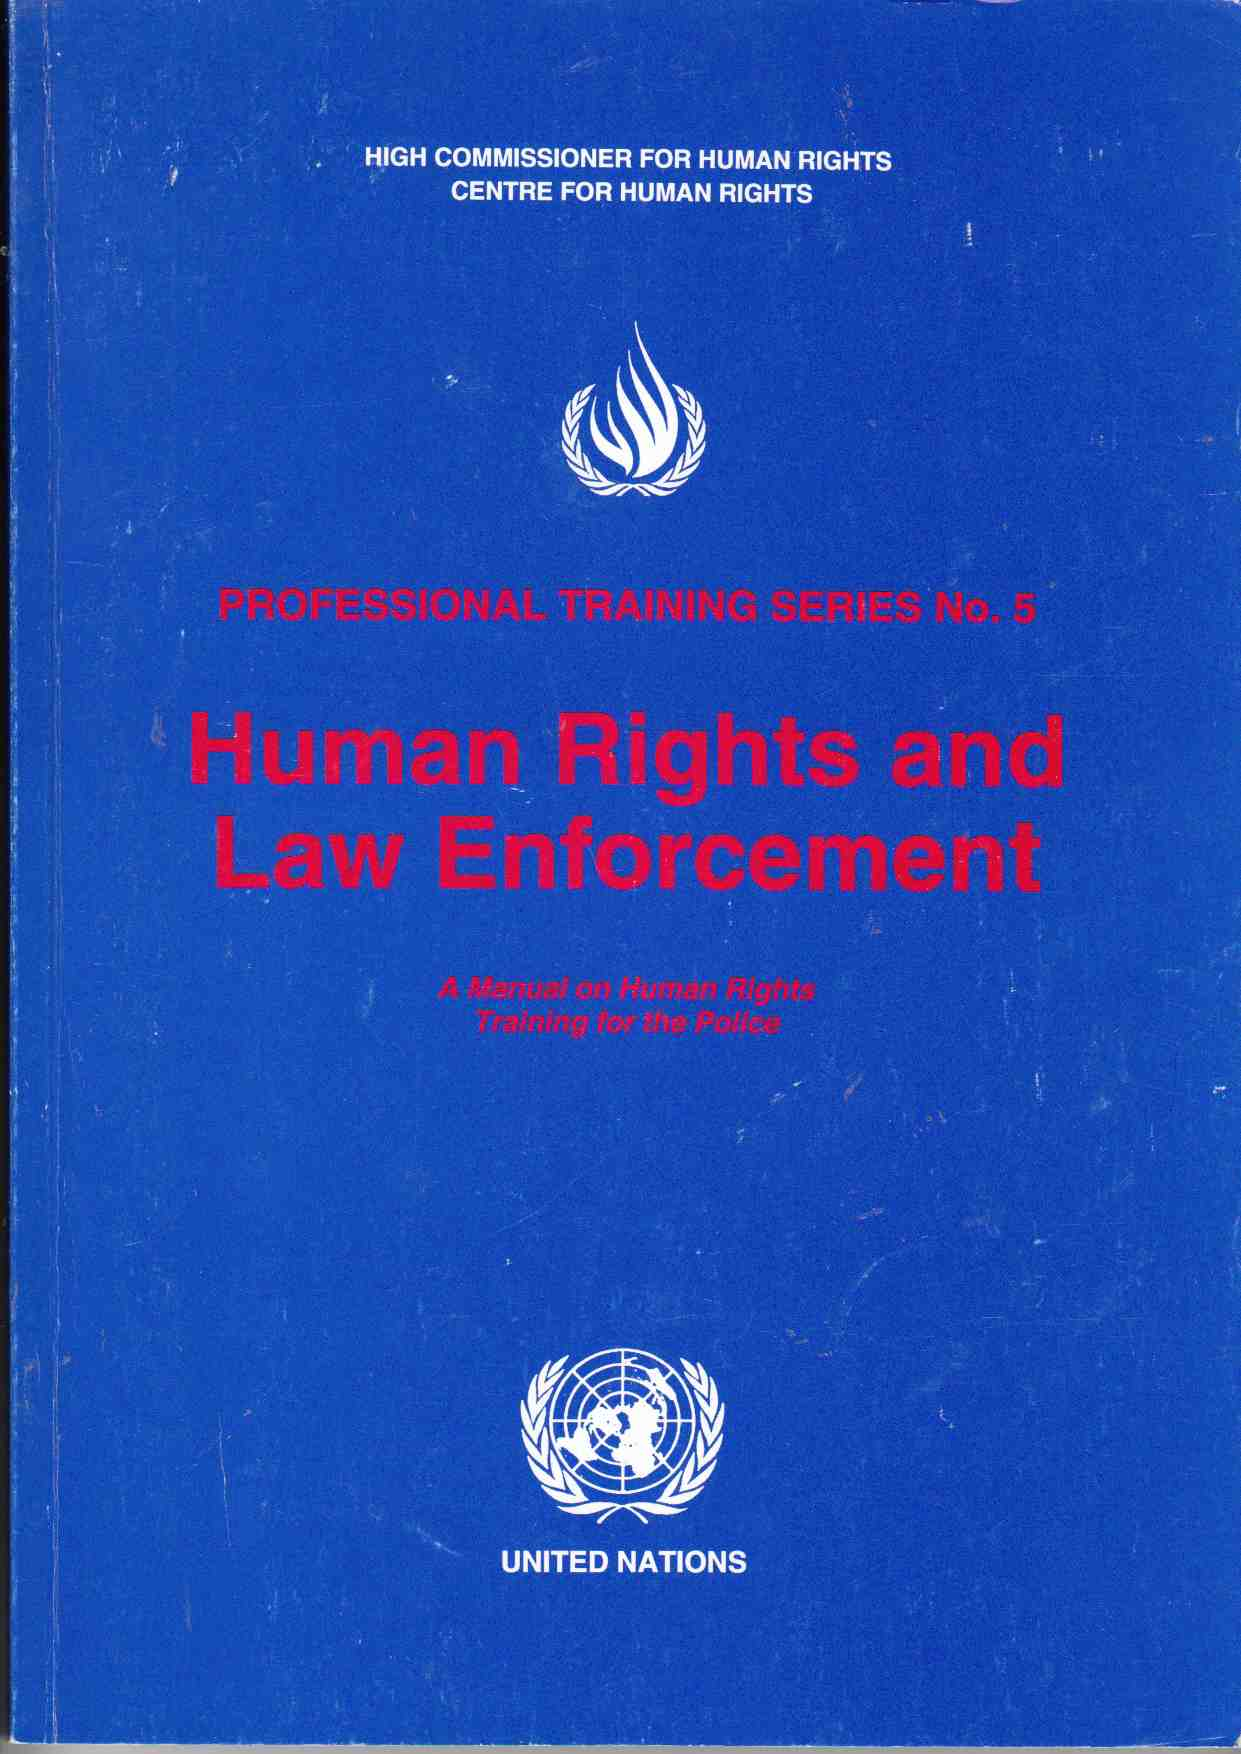 Image for Human Rights and Law Enforcement A Manual on Human Rights Training for the Police